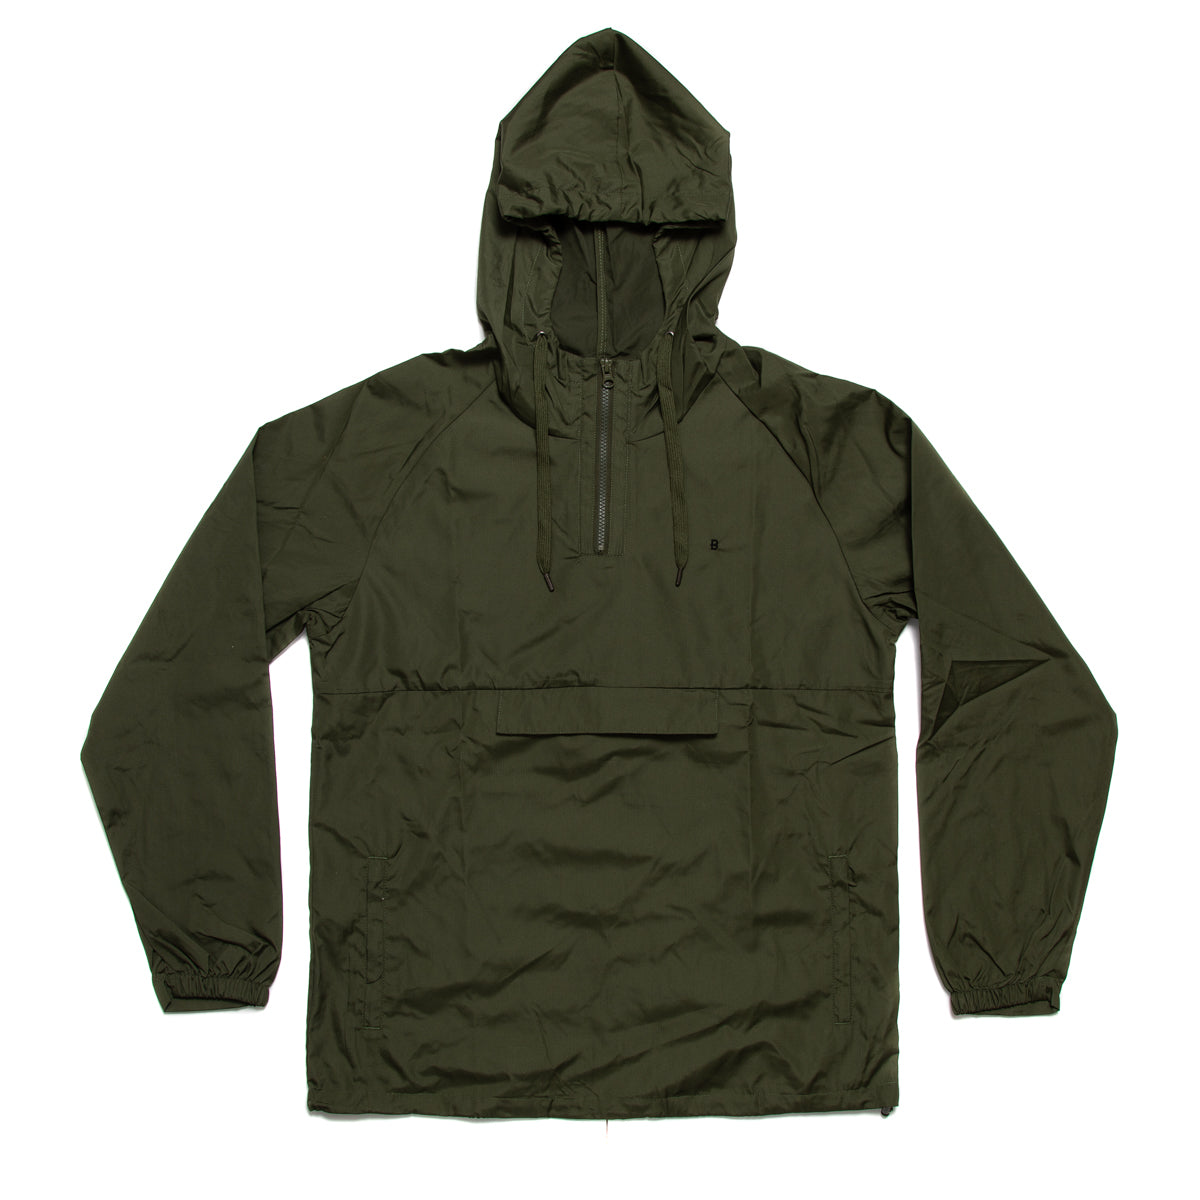 BASLÄGER WINDBREAKERS